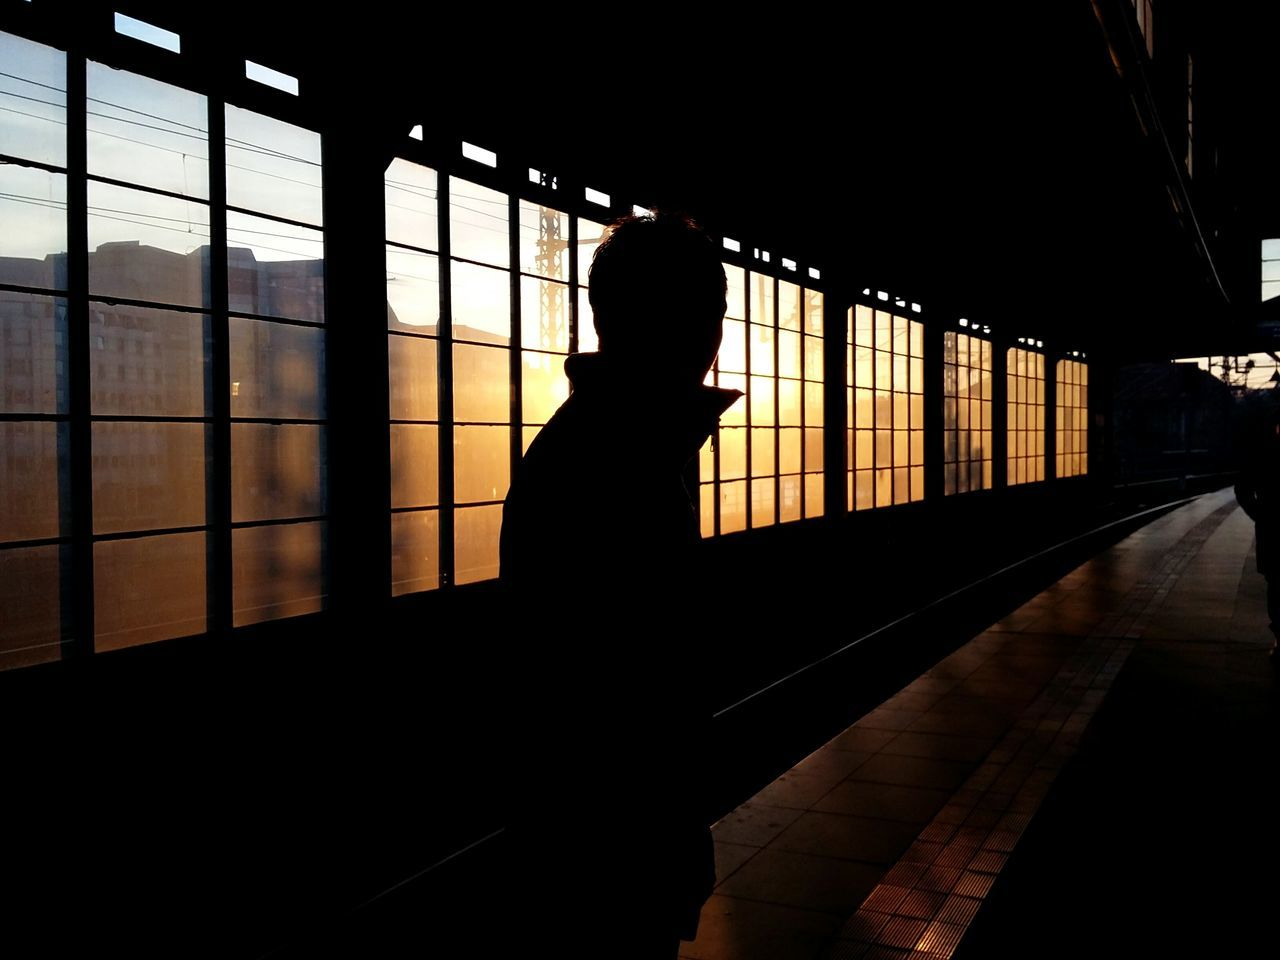 friend in the sunset. · Berlin germany 030 metro station train station Against the light light and shadow Silhouette Silhouettes darkness and light Architecture Metal beams simplicity Urban geometry